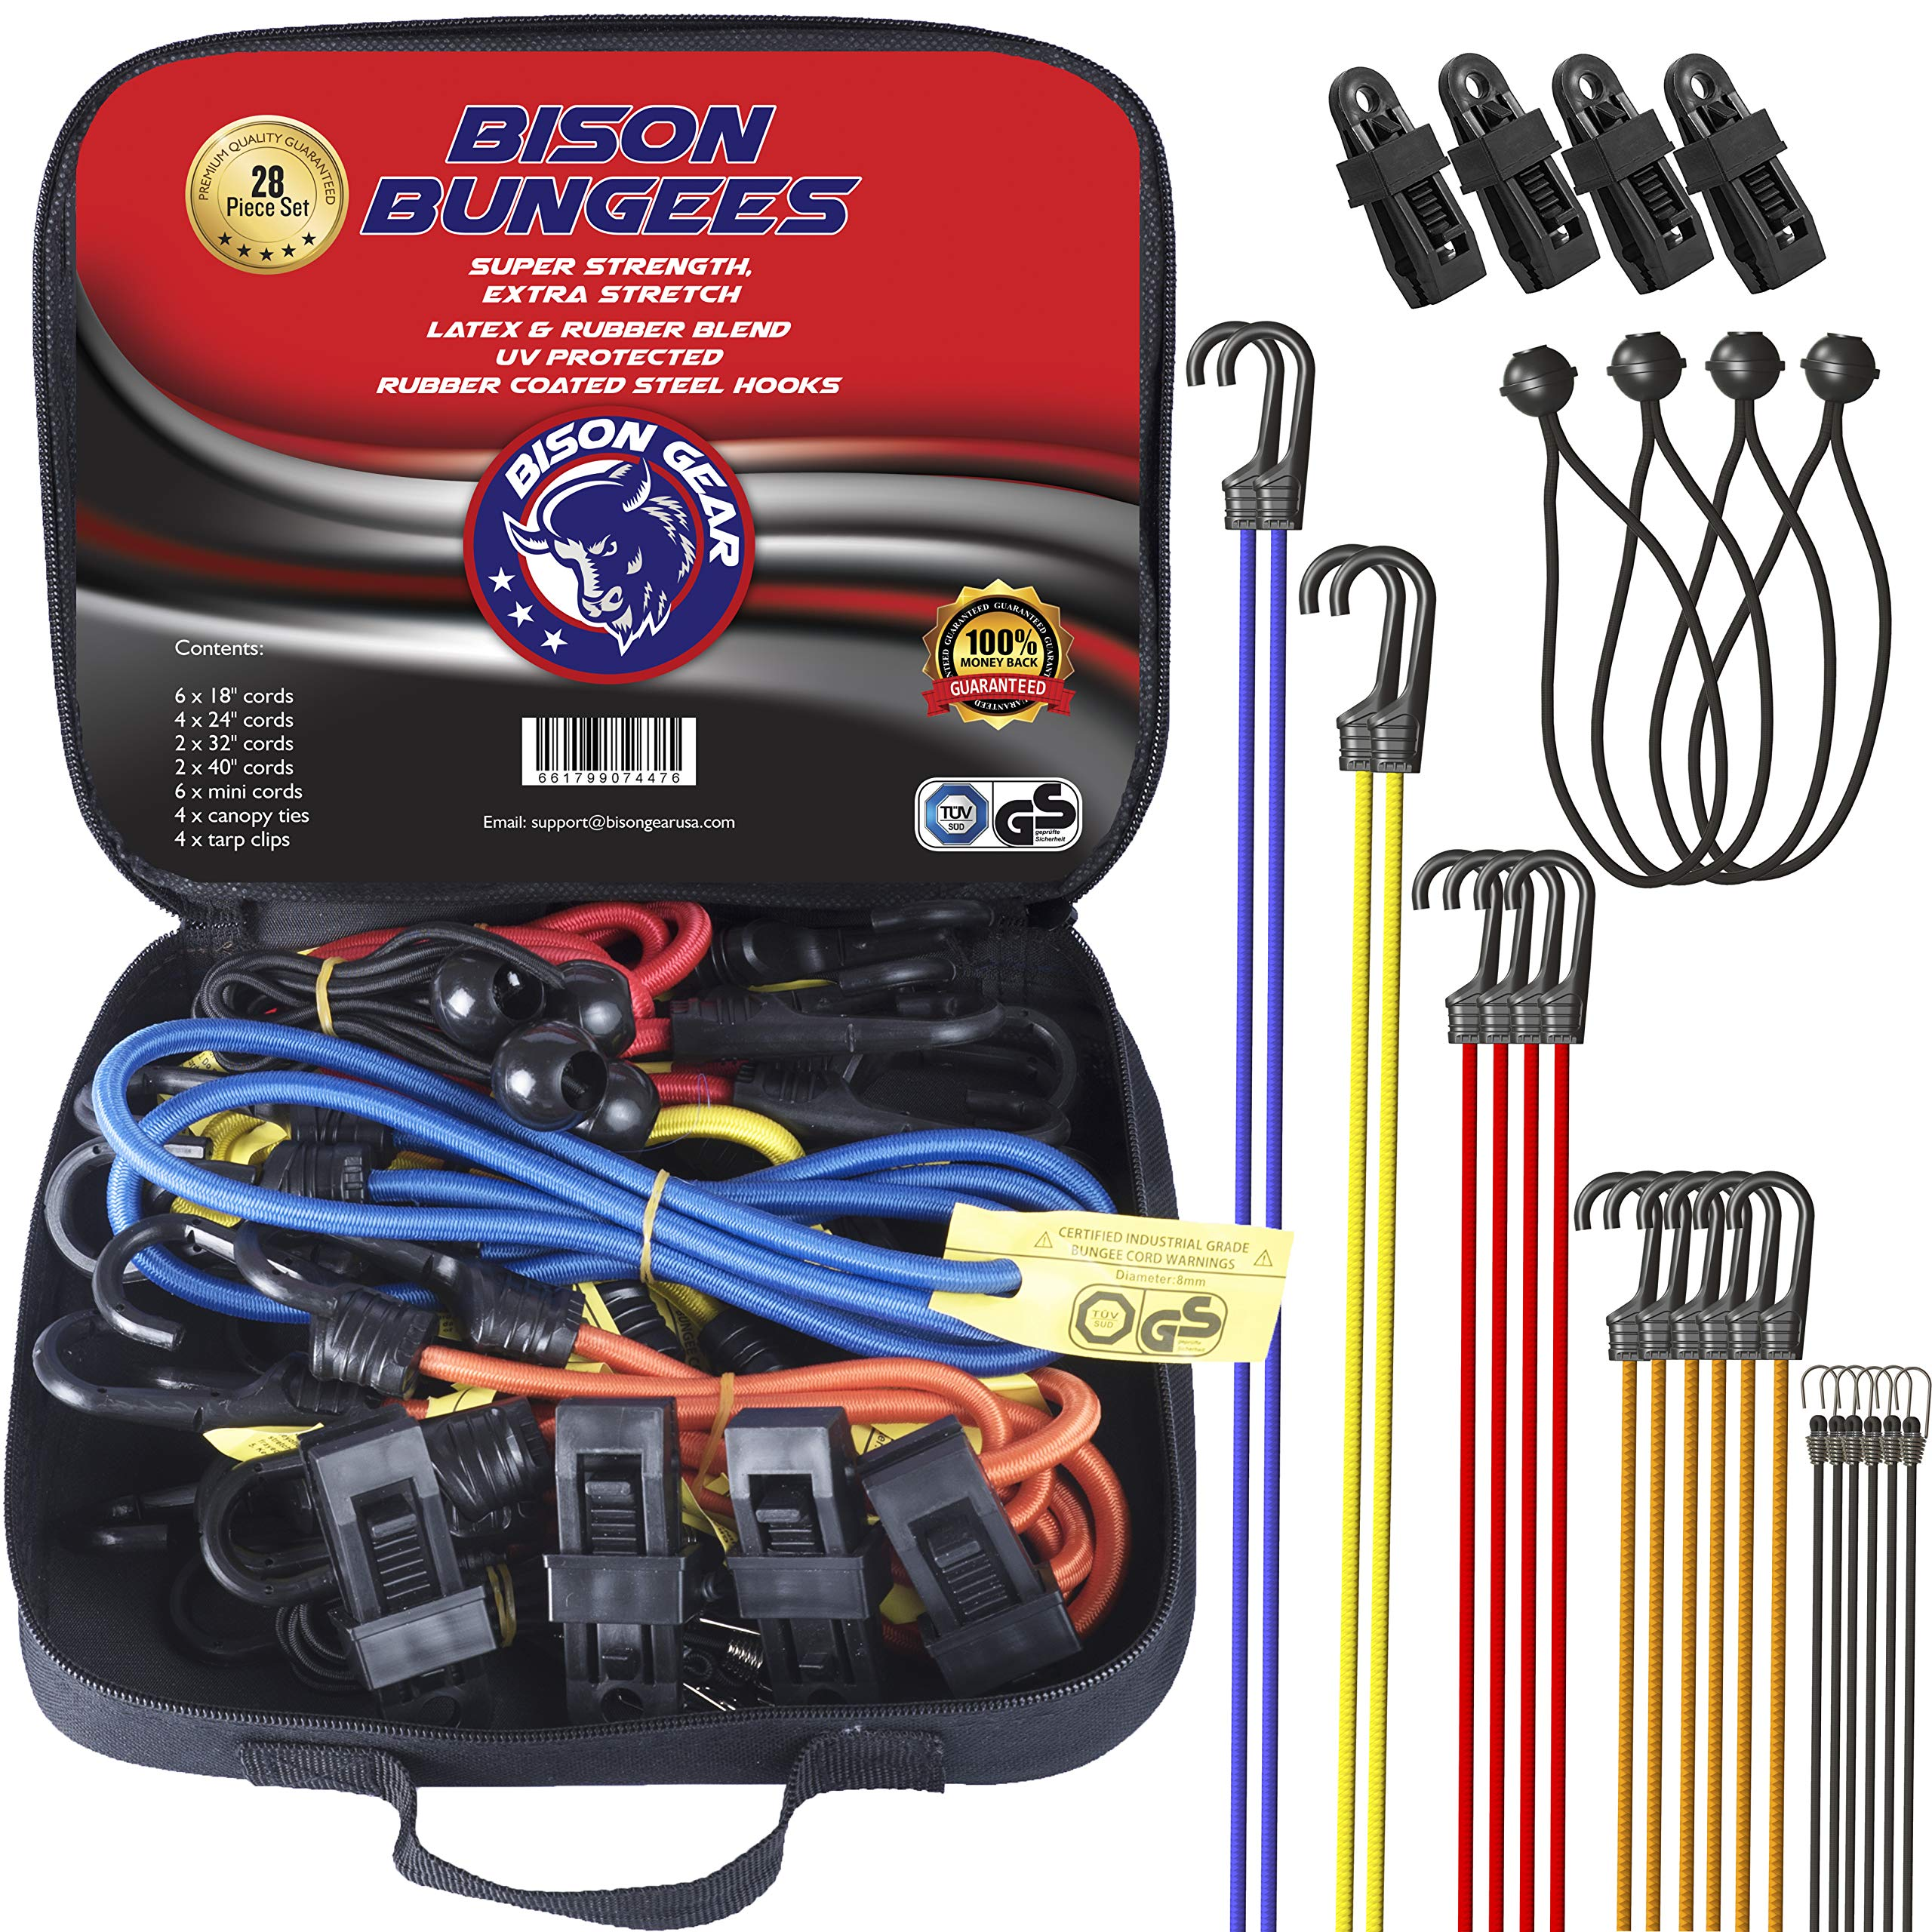 Bison Gear 28PC Premium Bungee Cord Assortment Including Ball Bungees and Tarp Clips - 28 Piece Heavy Duty Tie Down Pack - UV Resistant Industrial Grade Shock Cord - GS Certified Bungee Straps by BISON GEAR